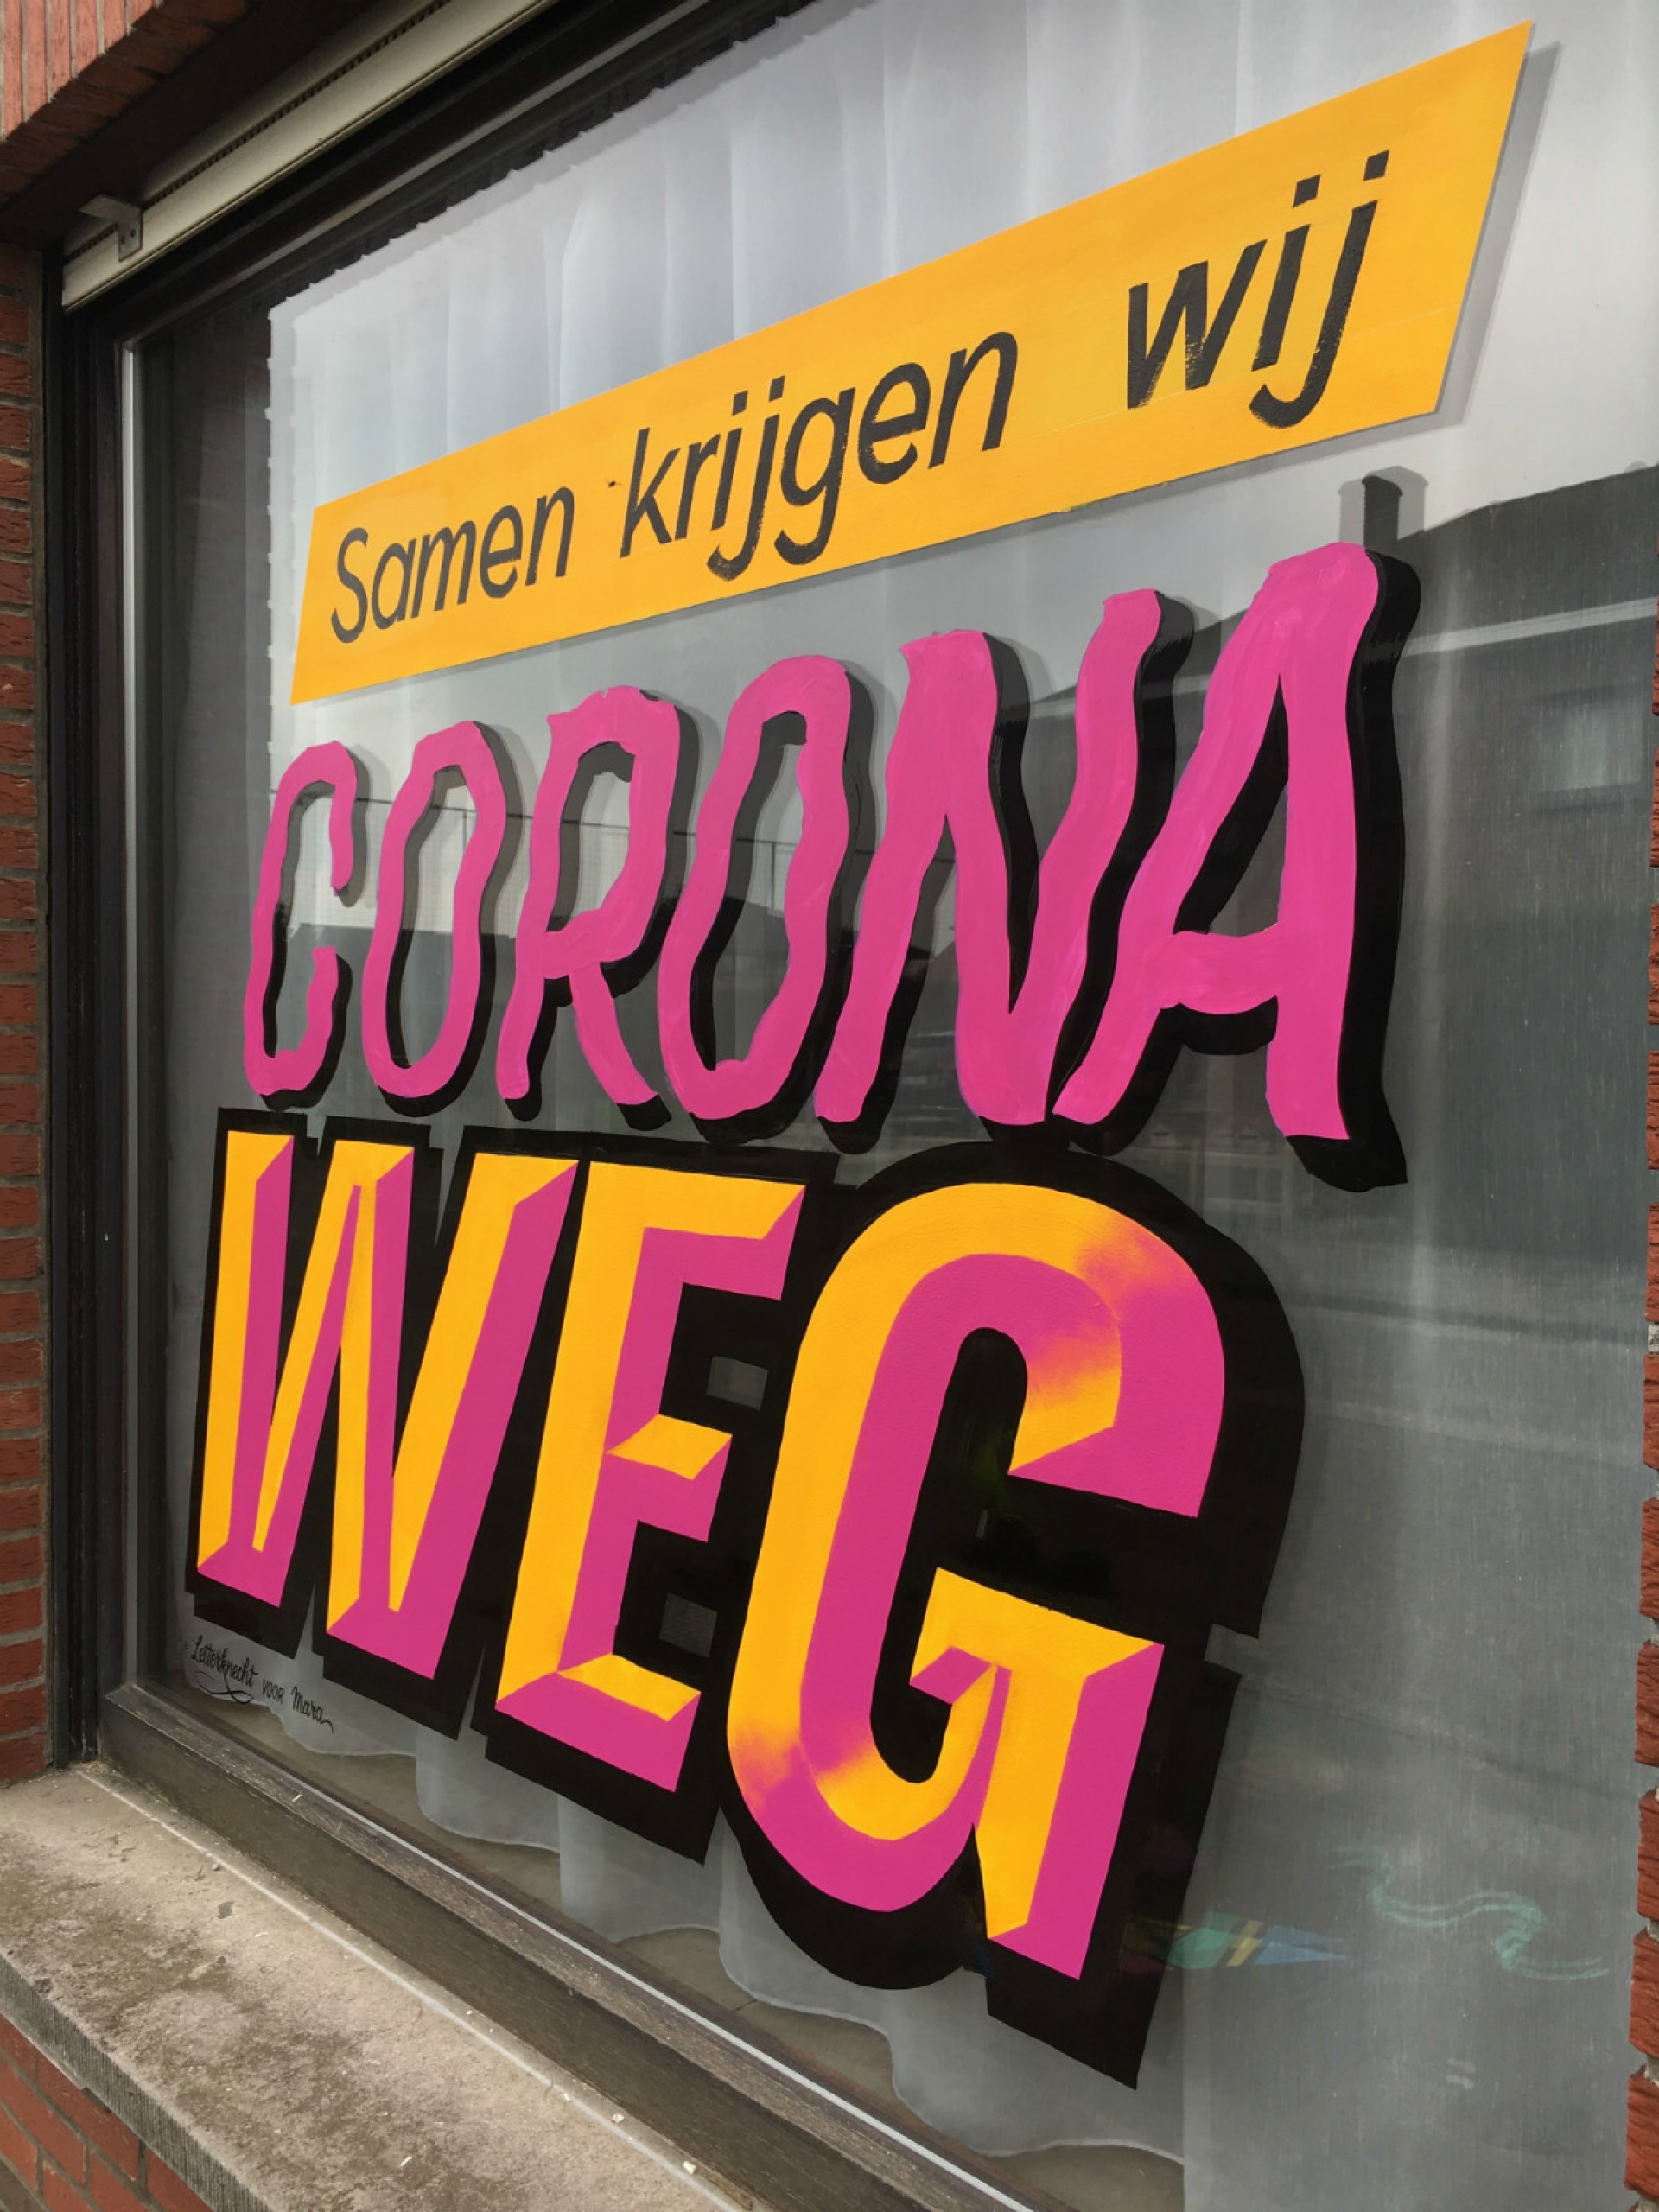 Letterknecht, Lockdown letters: bevel prismatic emboss corona windows